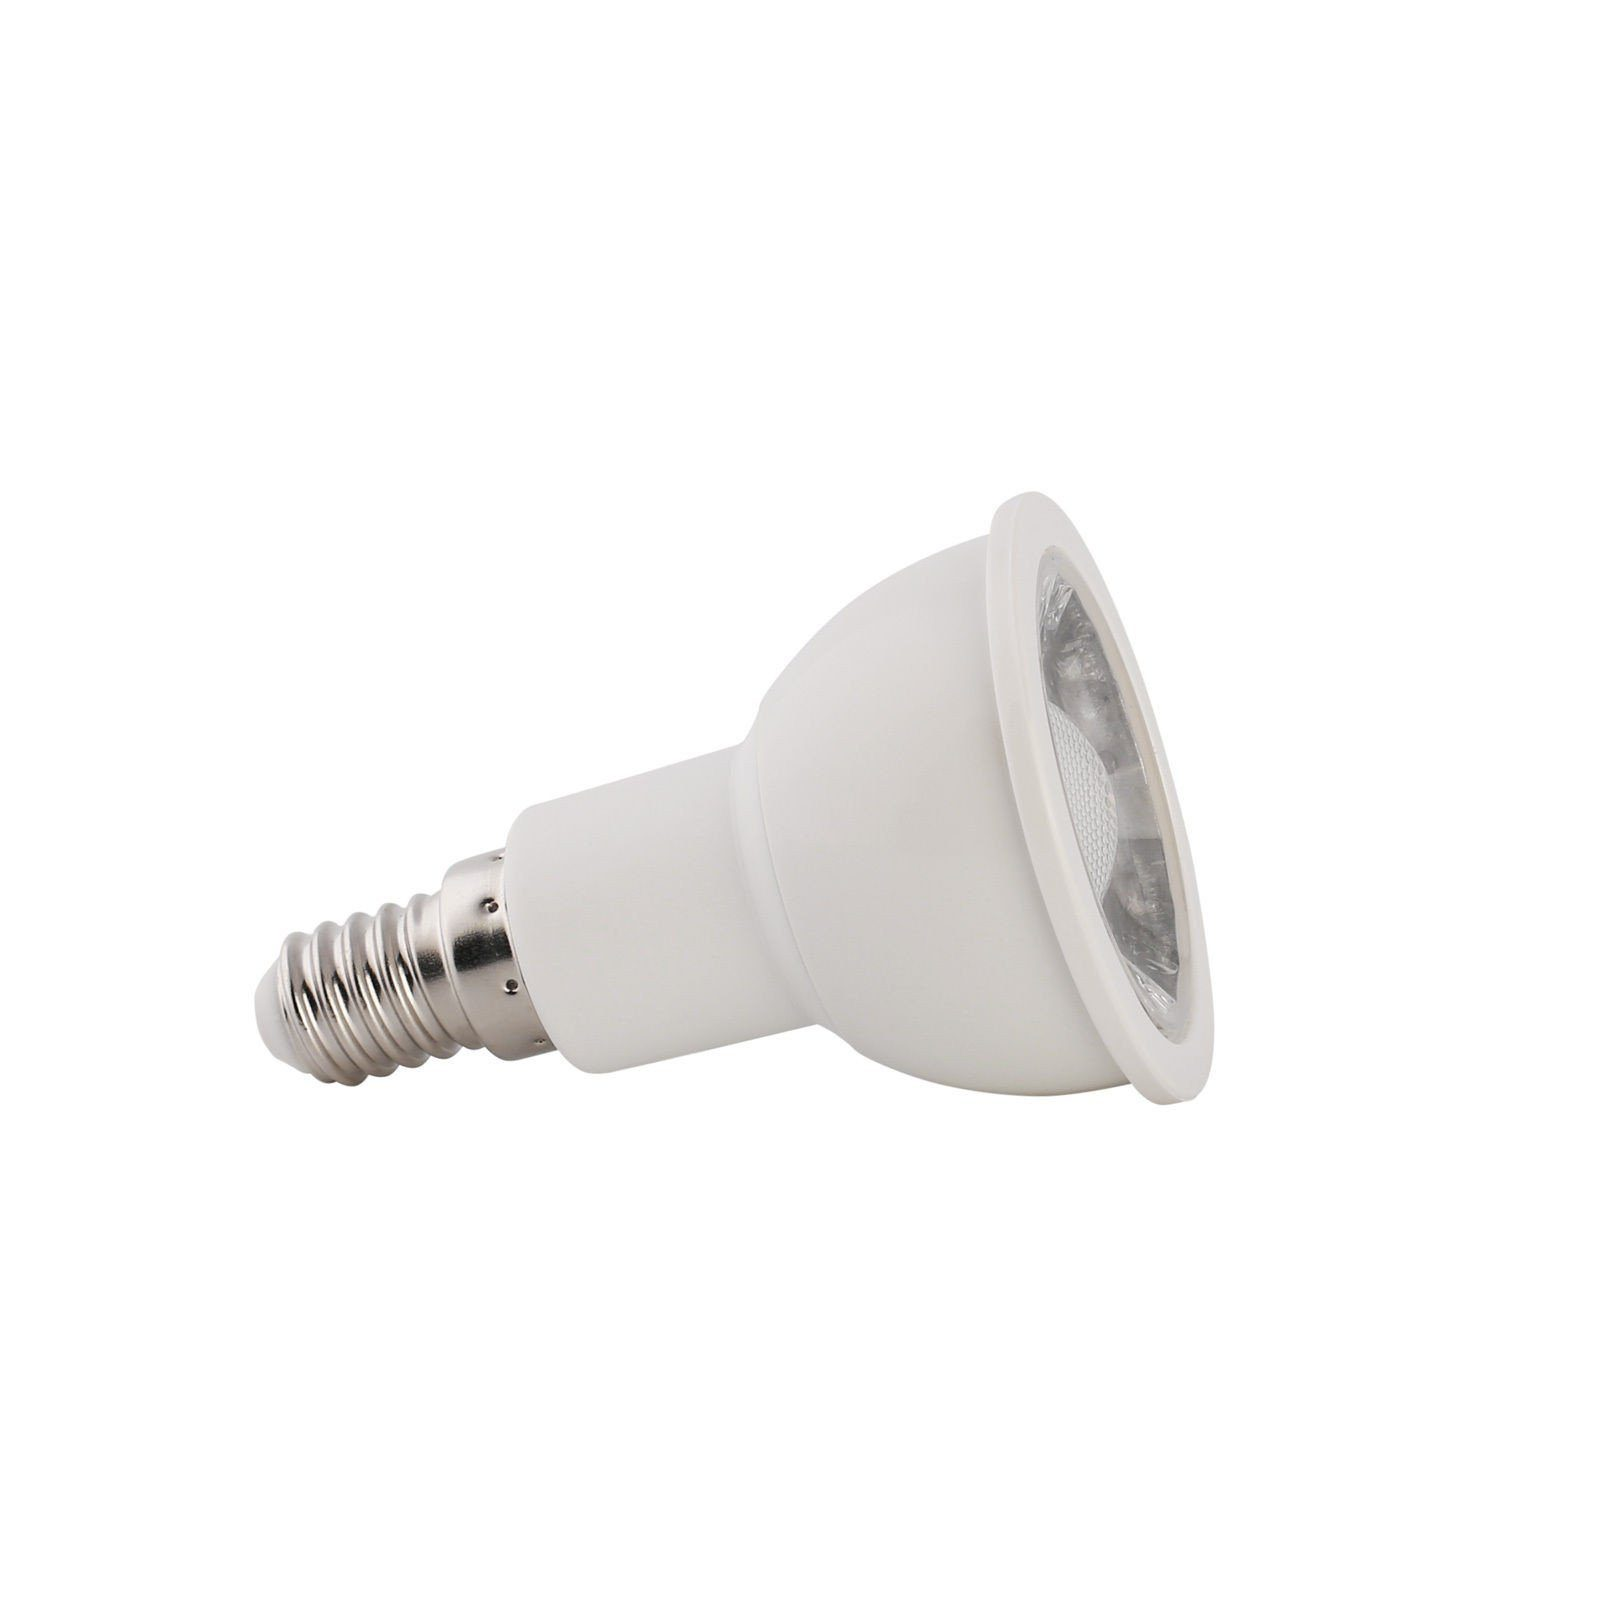 Pool Tone 120V 16W Pentair Hayward Spa Bulb Cool White COB LED Bulb Home & Garden > Lighting > Light Bulbs Pool Tone